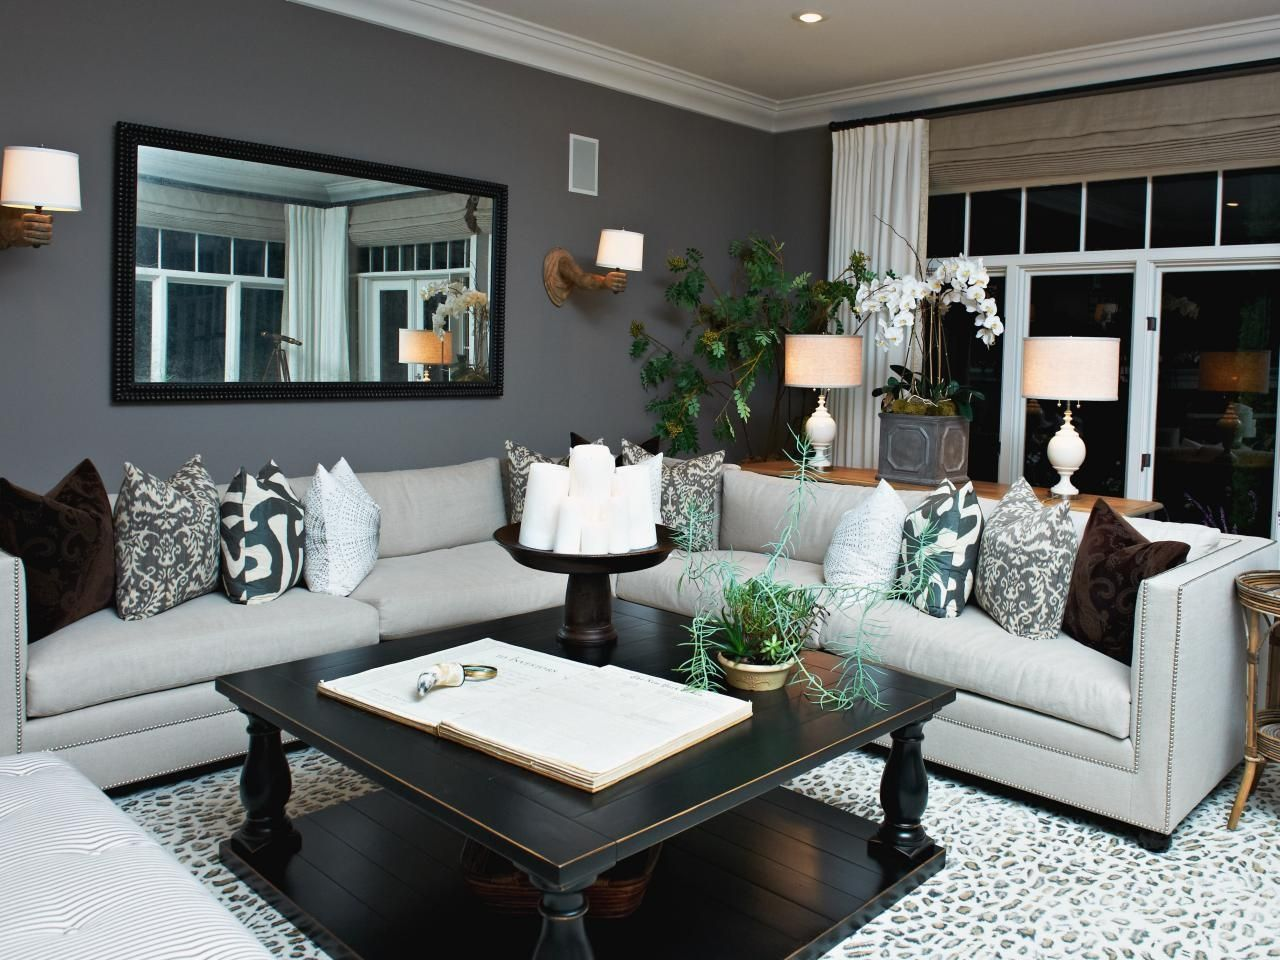 Cozy Living Room Ideas | See More At Http://diningandlivingroom.com/